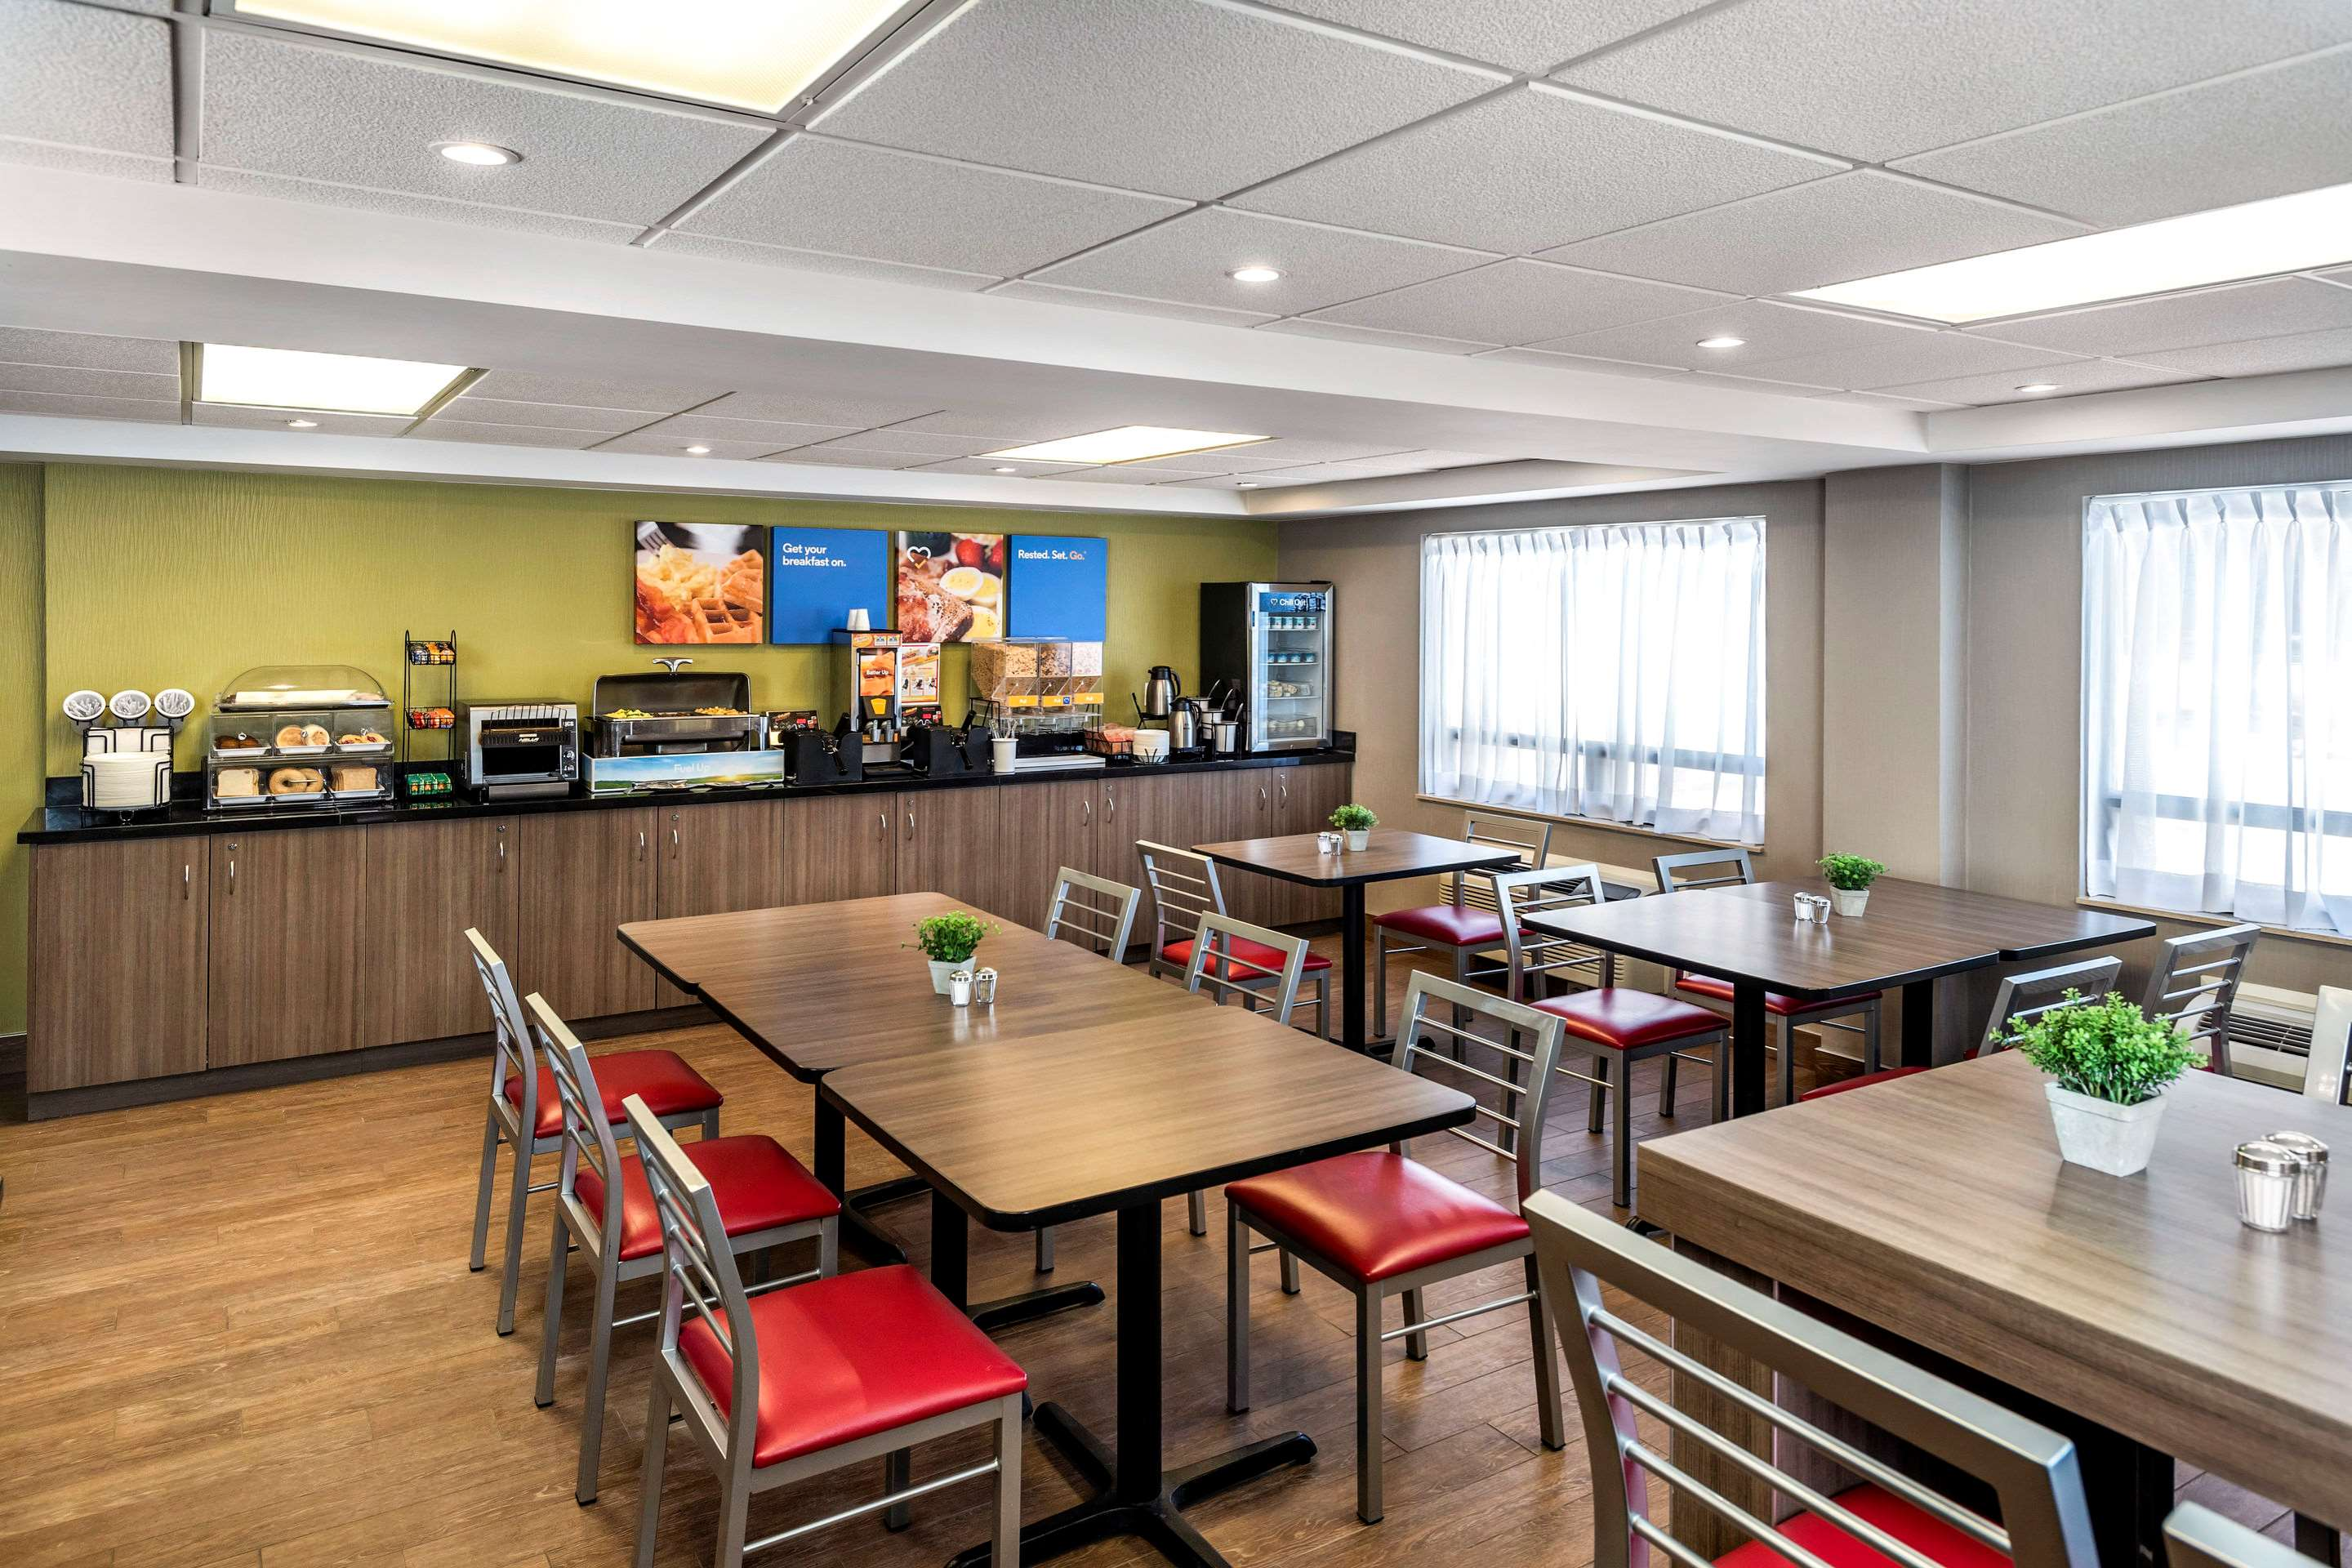 Comfort Inn in Saskatoon: Enjoy Hot Breakfast in Spacious Breakfast Room